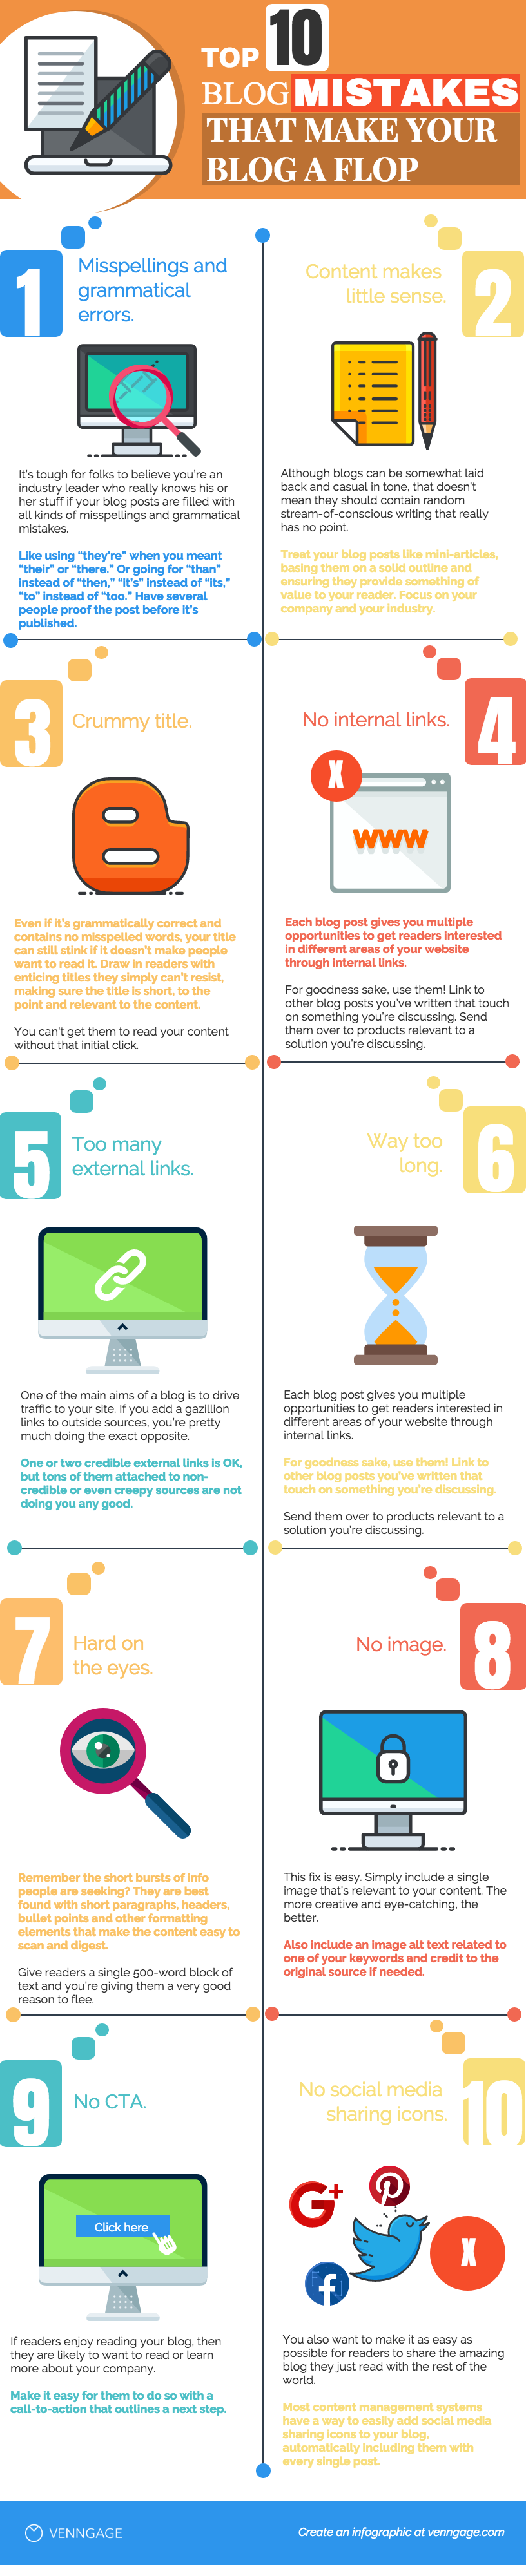 Top 10 blog mistakes that make your blog a flop Venngage Infographic